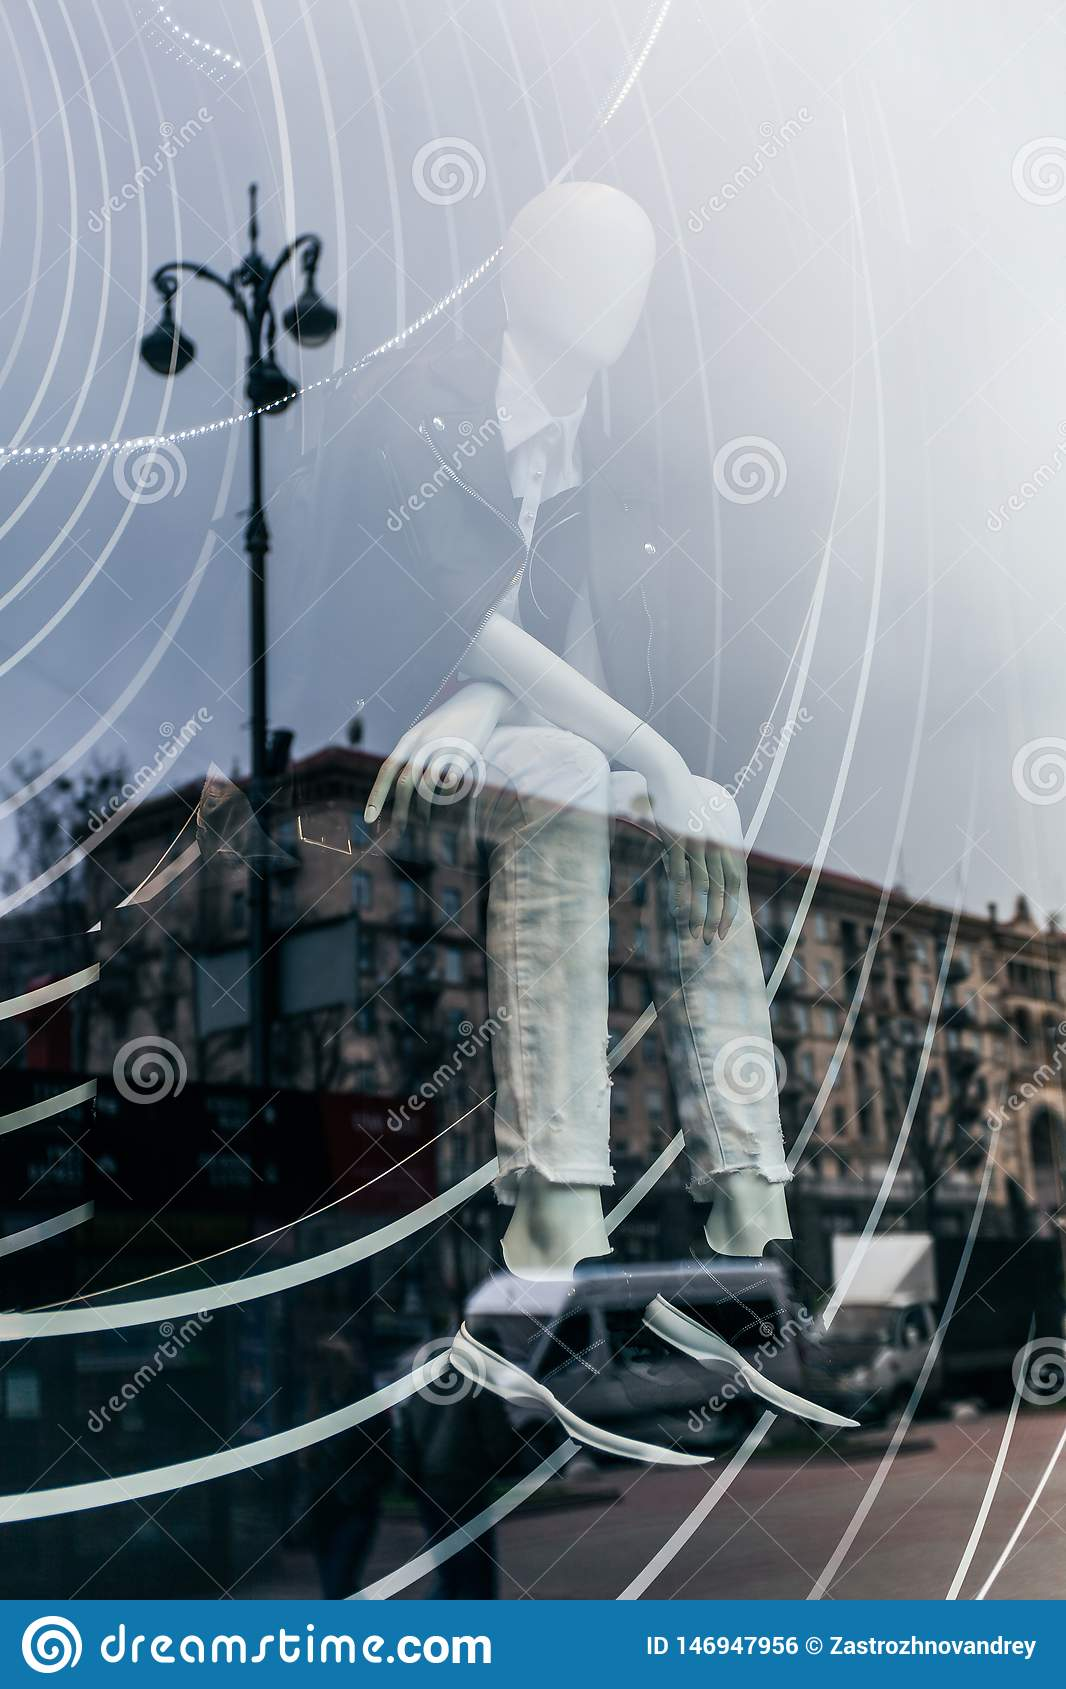 Double exposure is a reflection of the city on the glass shop window with a mannequin in fashionable clothes